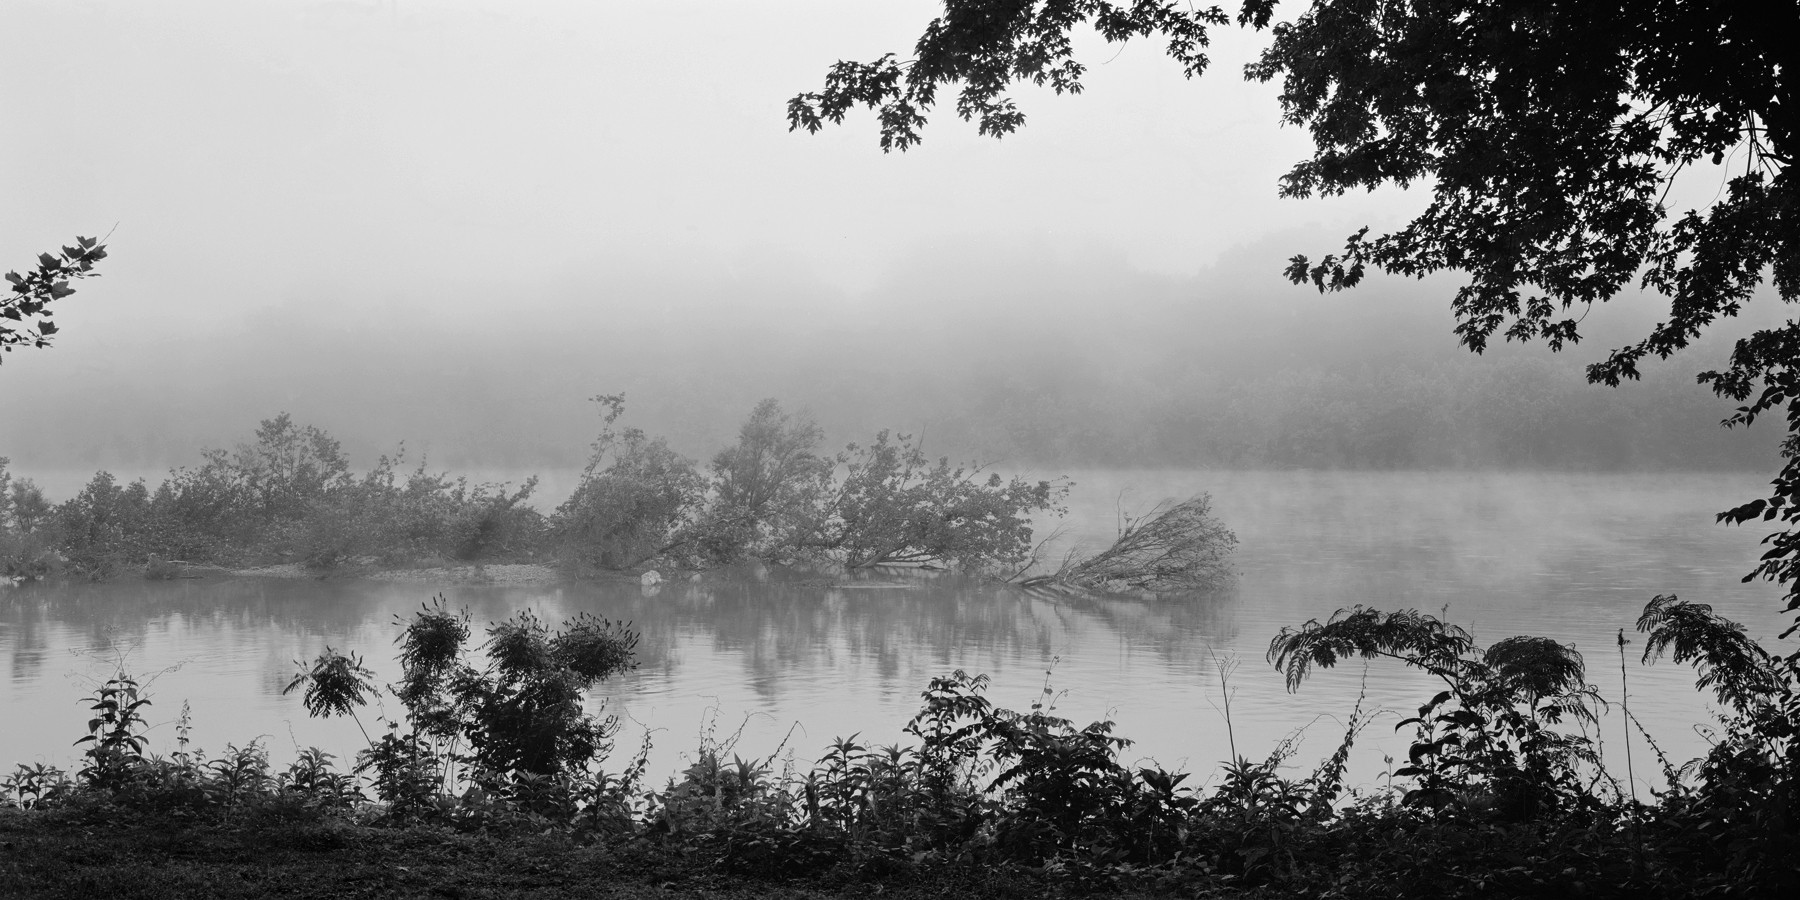 My work isn't just centered around the Pennsylvania Railroad, it also explores places of natural beauty and of a historic nature. The summer is often a relaxed time when I venture out with my family to explore new places and revisit old favorites, sometimes to make photos, but more often just to share the diverse history and landscape with the kids.  Delaware River at Washington's Crossing, Pennsylvania.